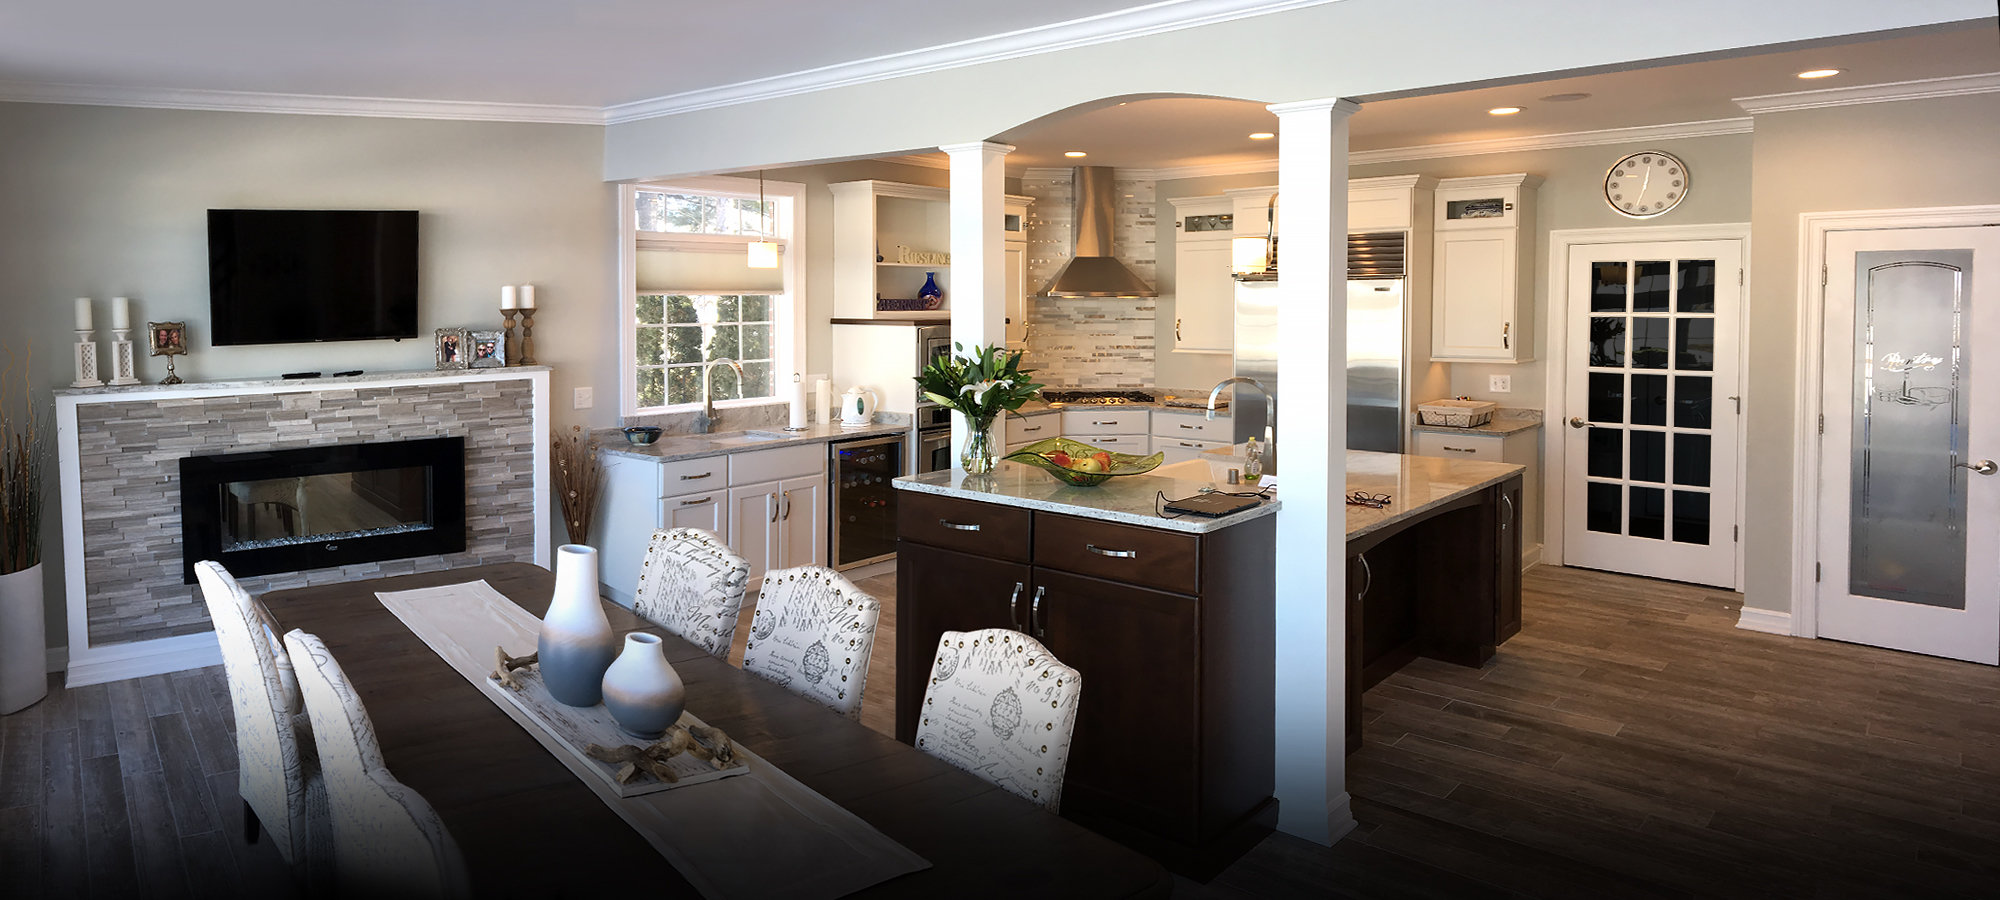 wisconsin kitchen remodeling starts with higher design